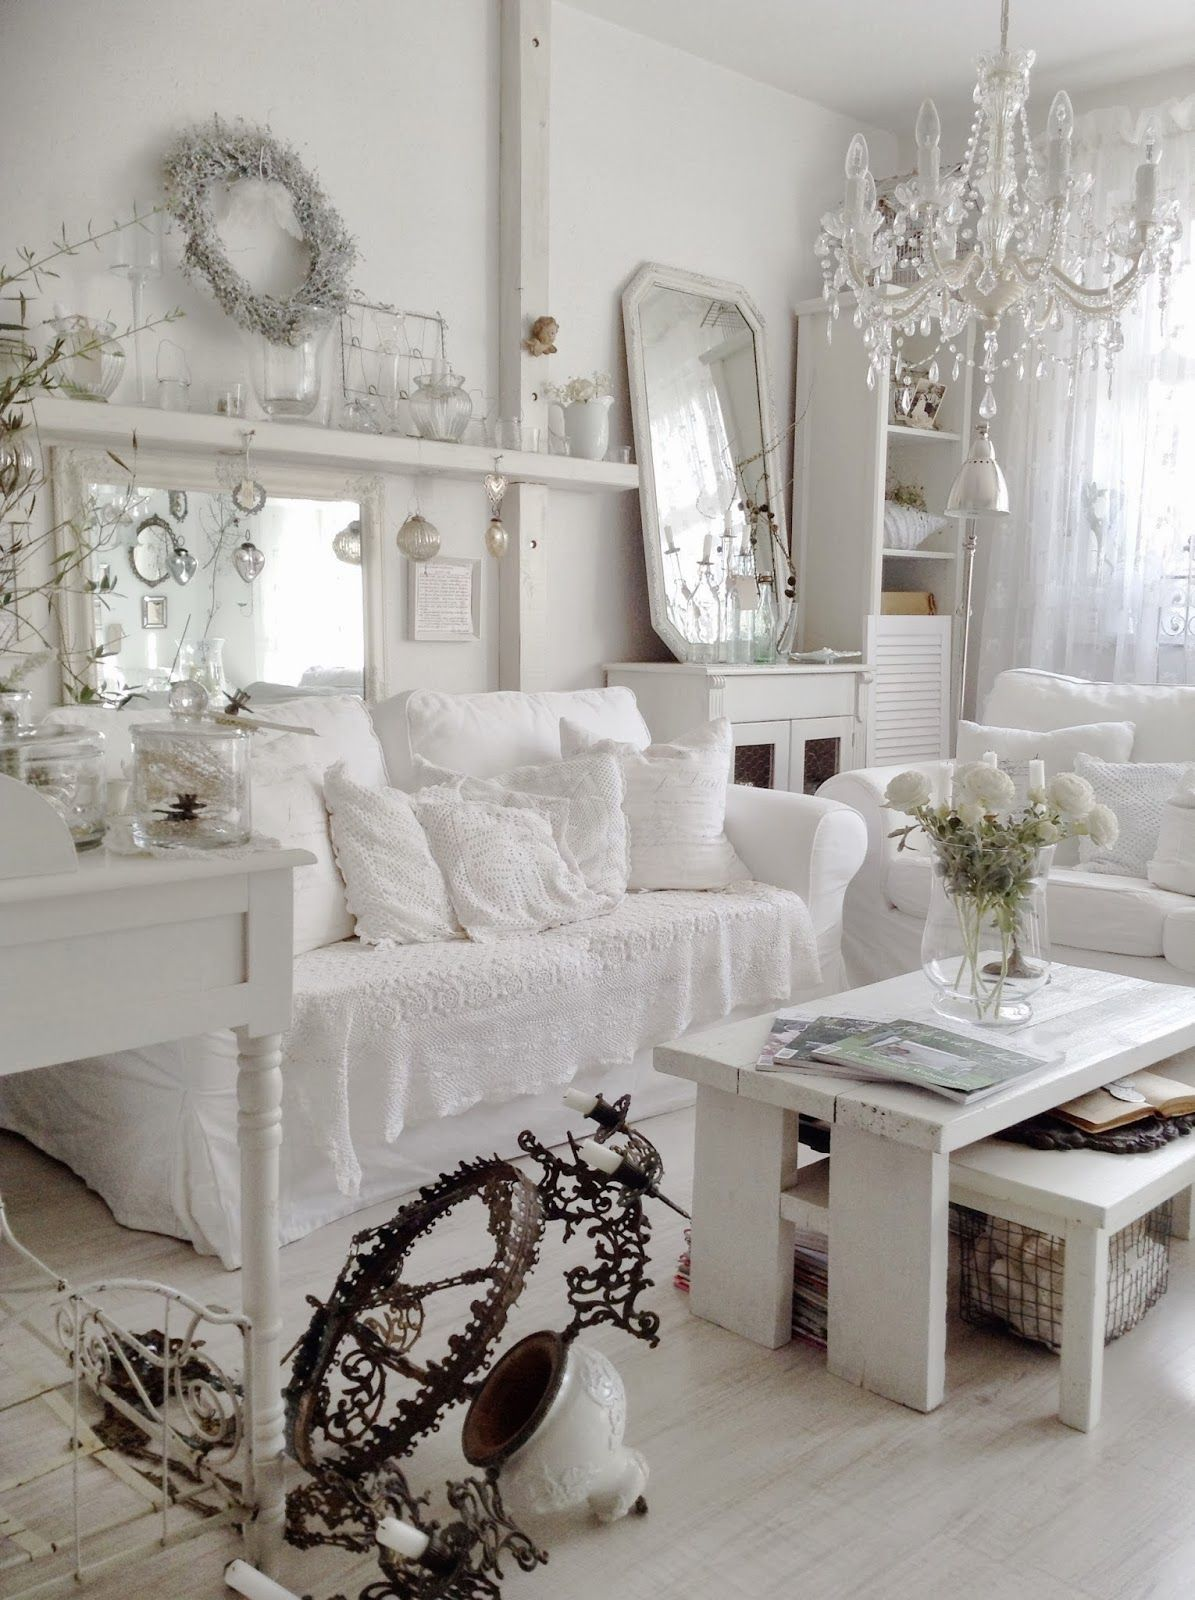 a y white pinterest wohnzimmer haus und shabby chic wohnzimmer. Black Bedroom Furniture Sets. Home Design Ideas